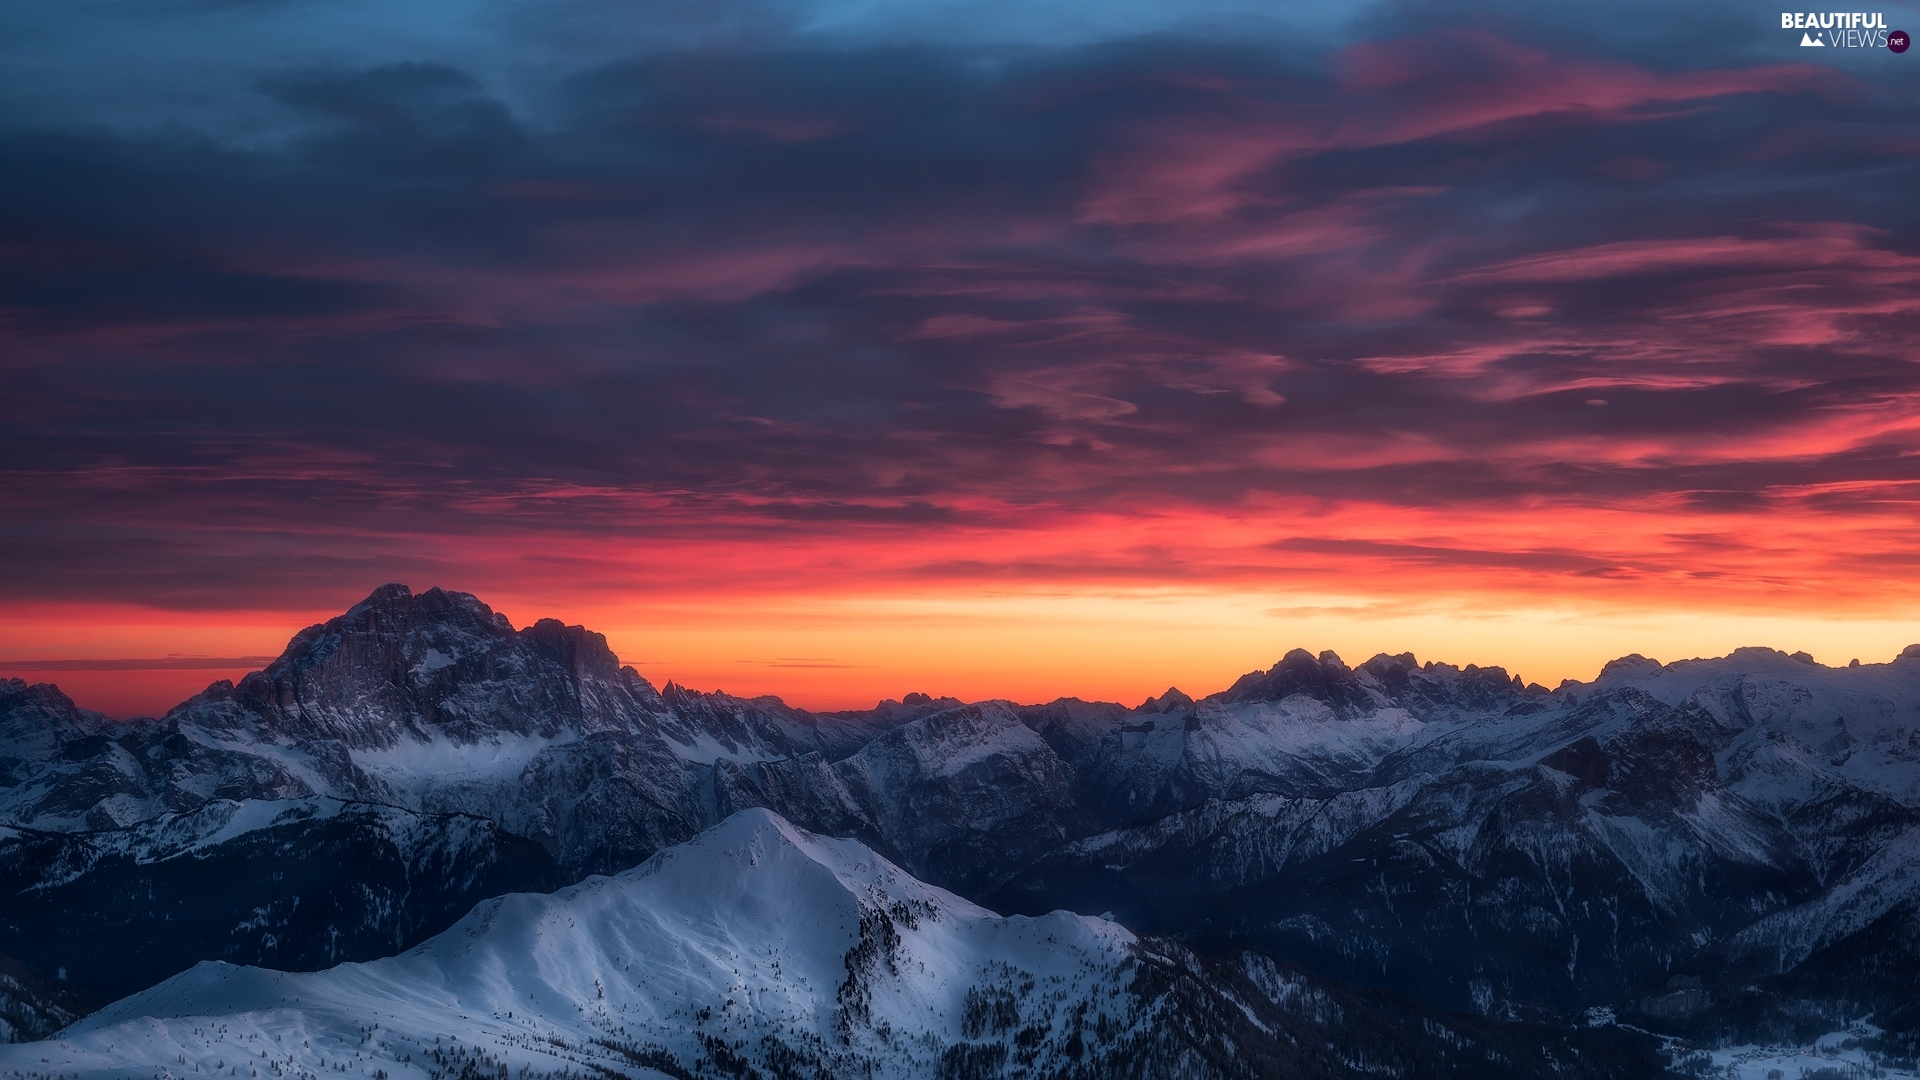 Snowy, Mountains, Sky, clouds, peaks, Great Sunsets